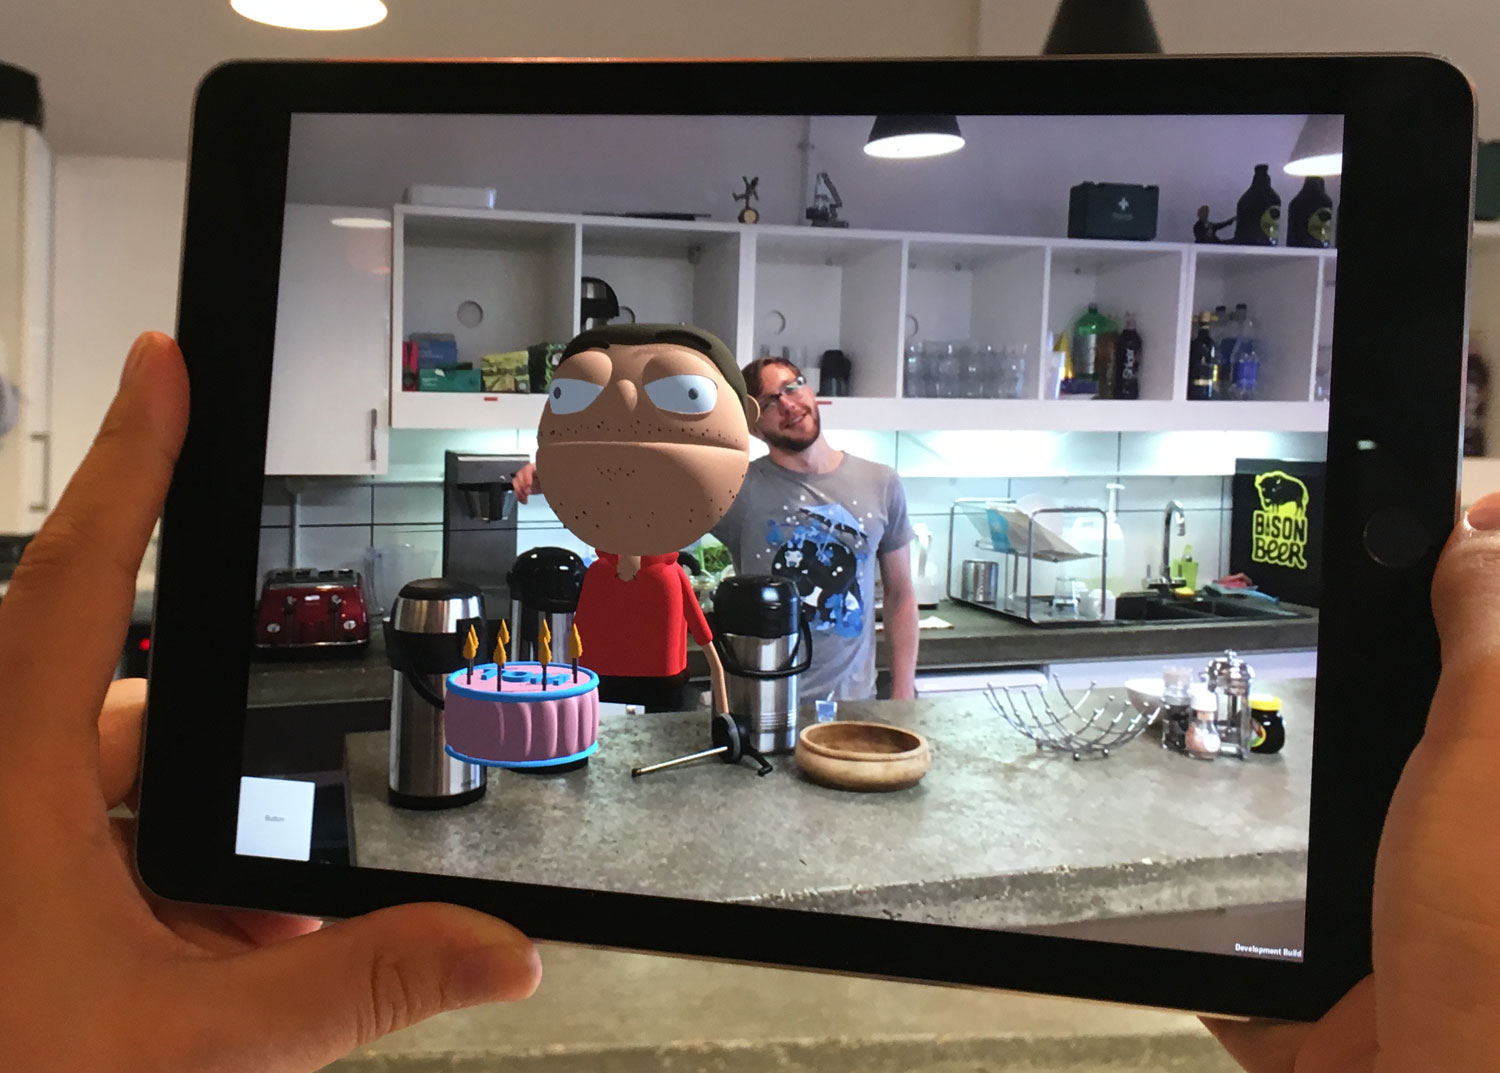 Making the most of ARKit with some RamJam experiments